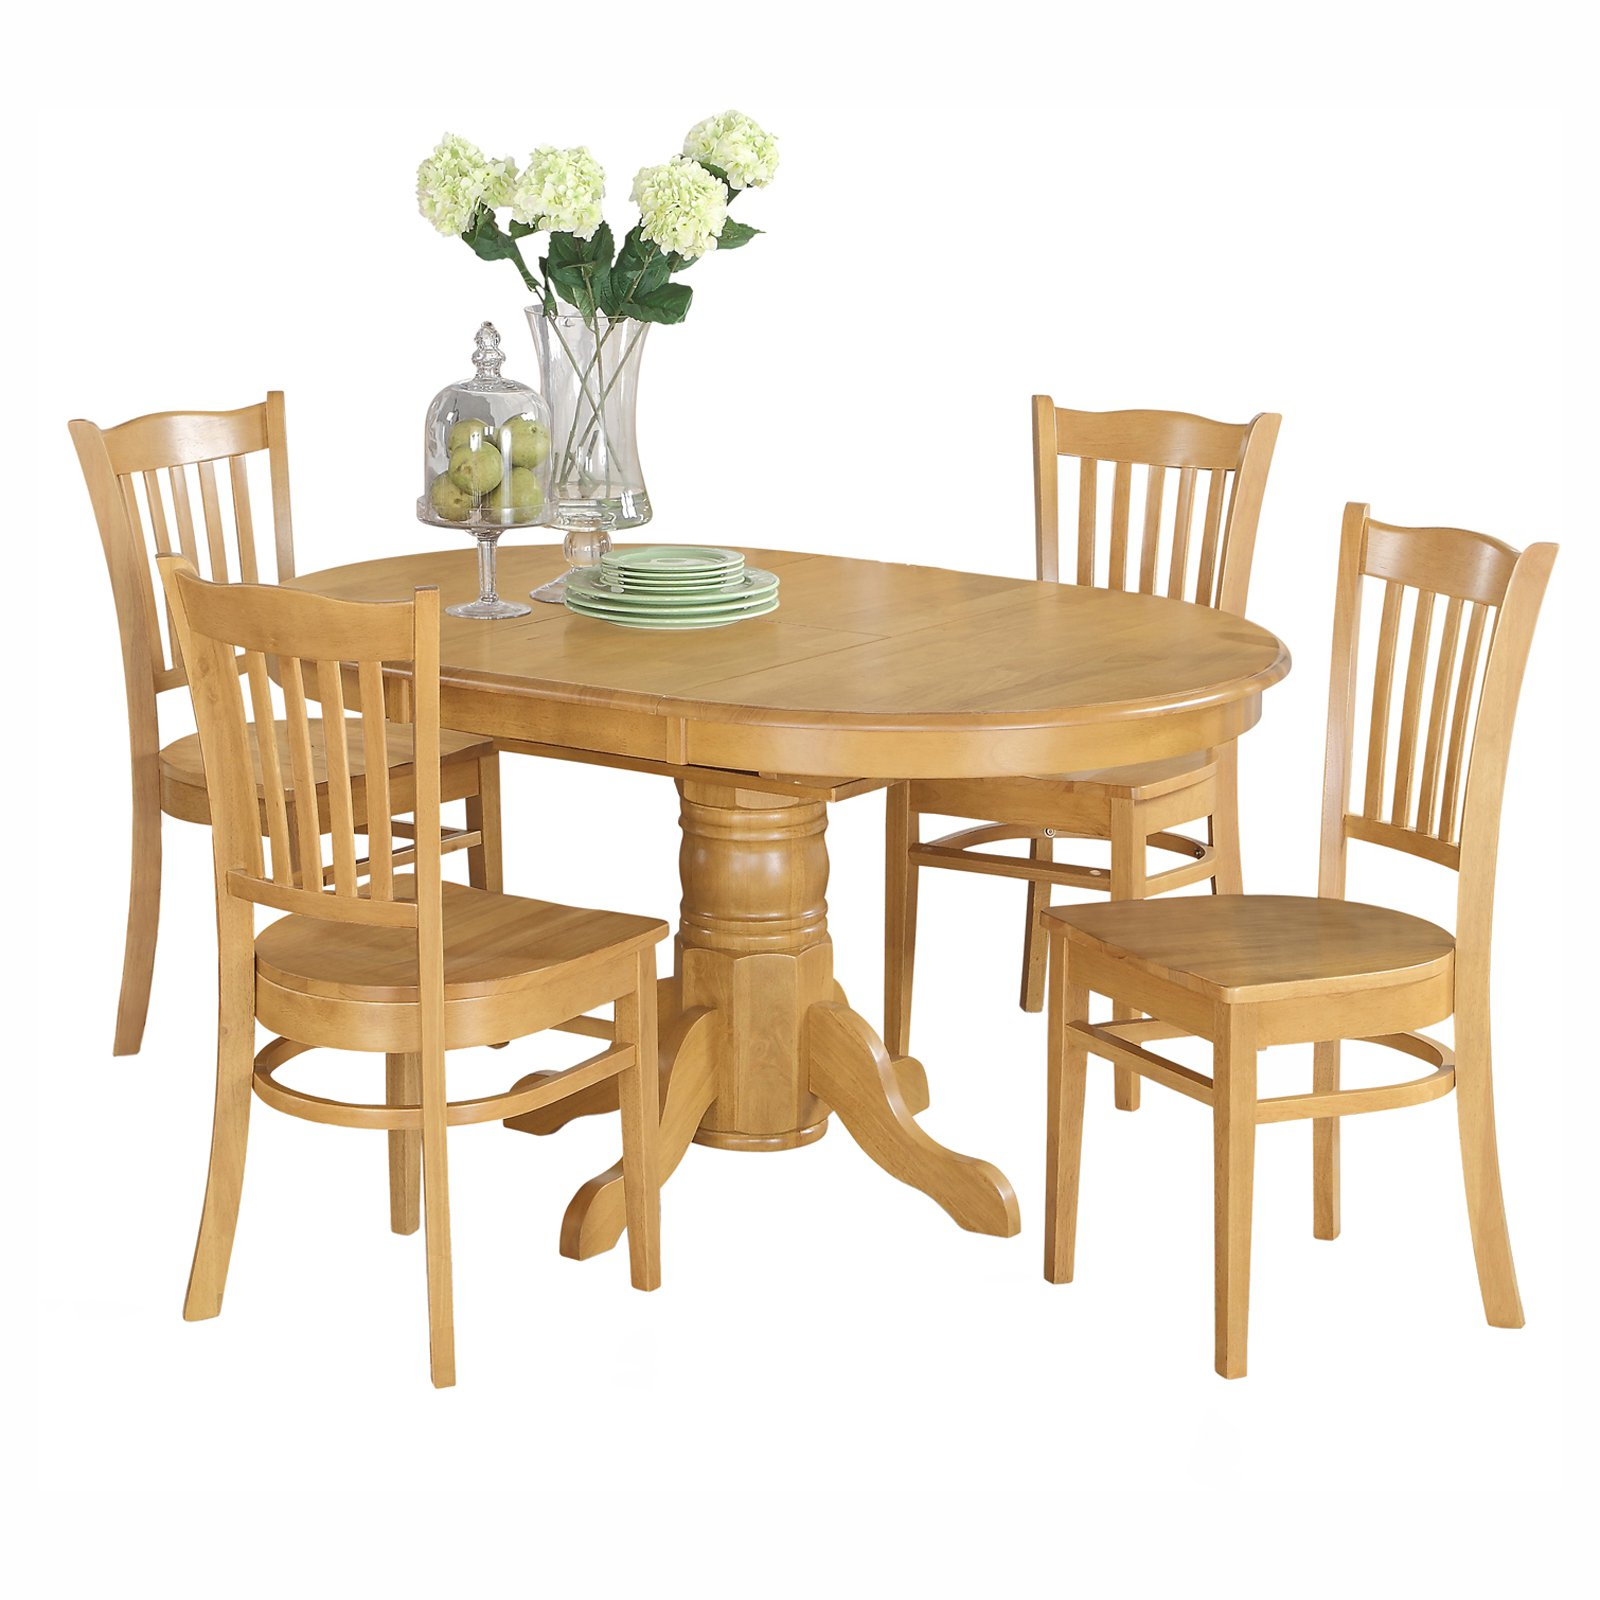 Captivating East West Furniture Avon 5 Piece Pedestal Oval Dining Table Set With Groton  Wooden Seat Chairs